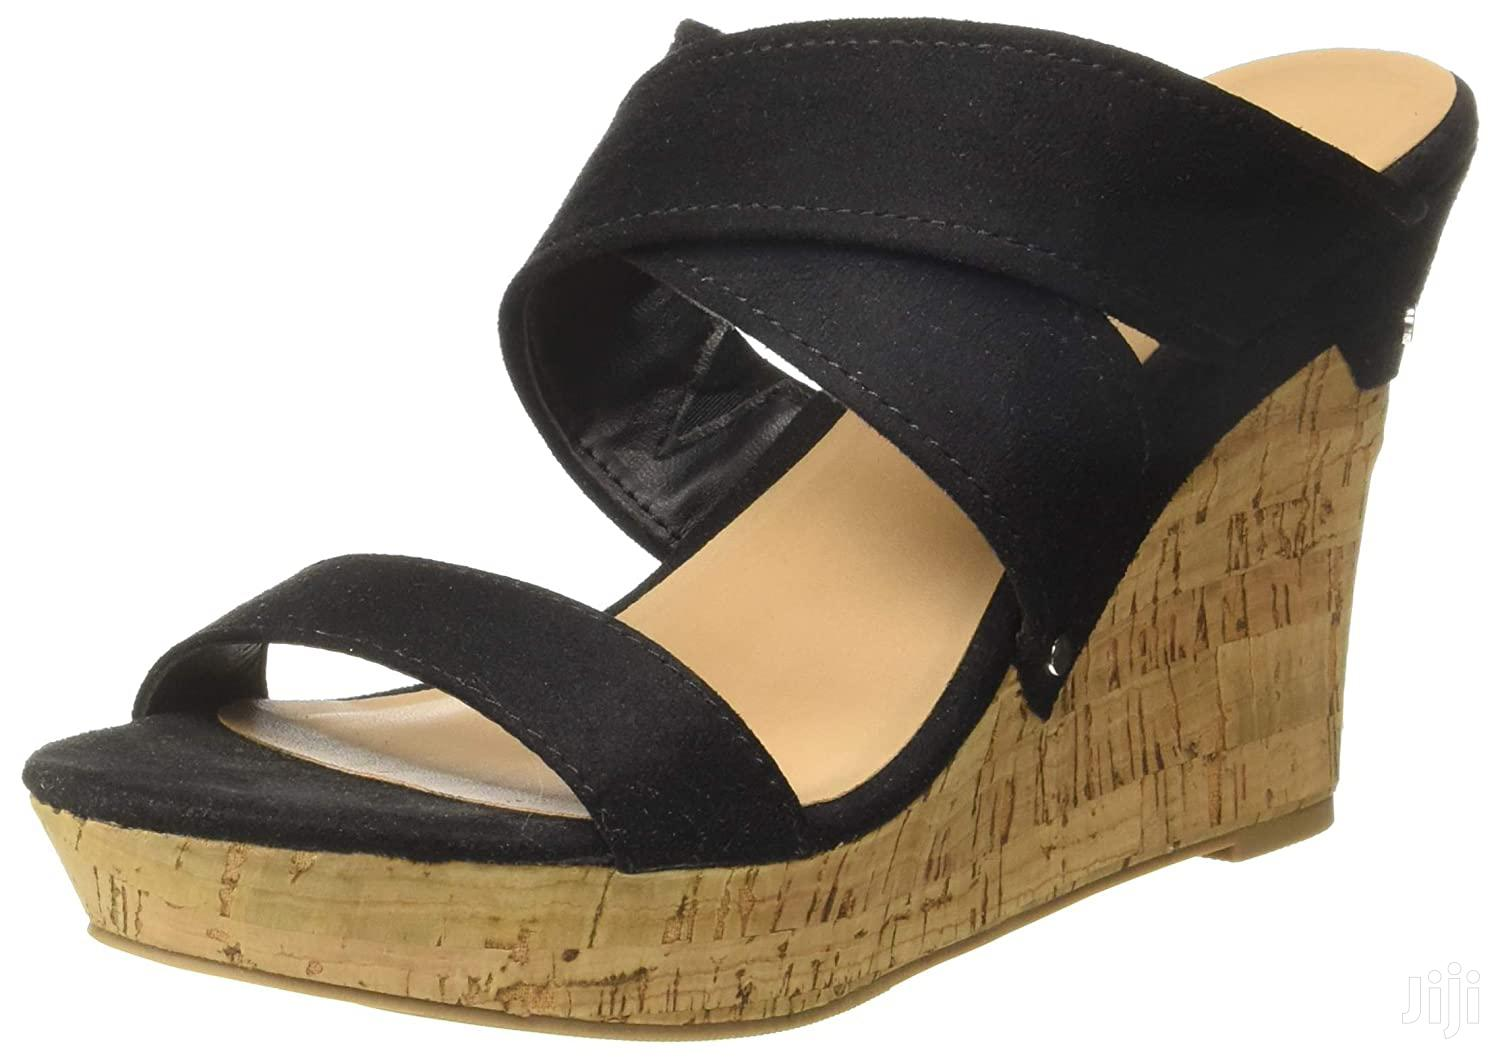 Call It Spring Women's Wedge Sandals in